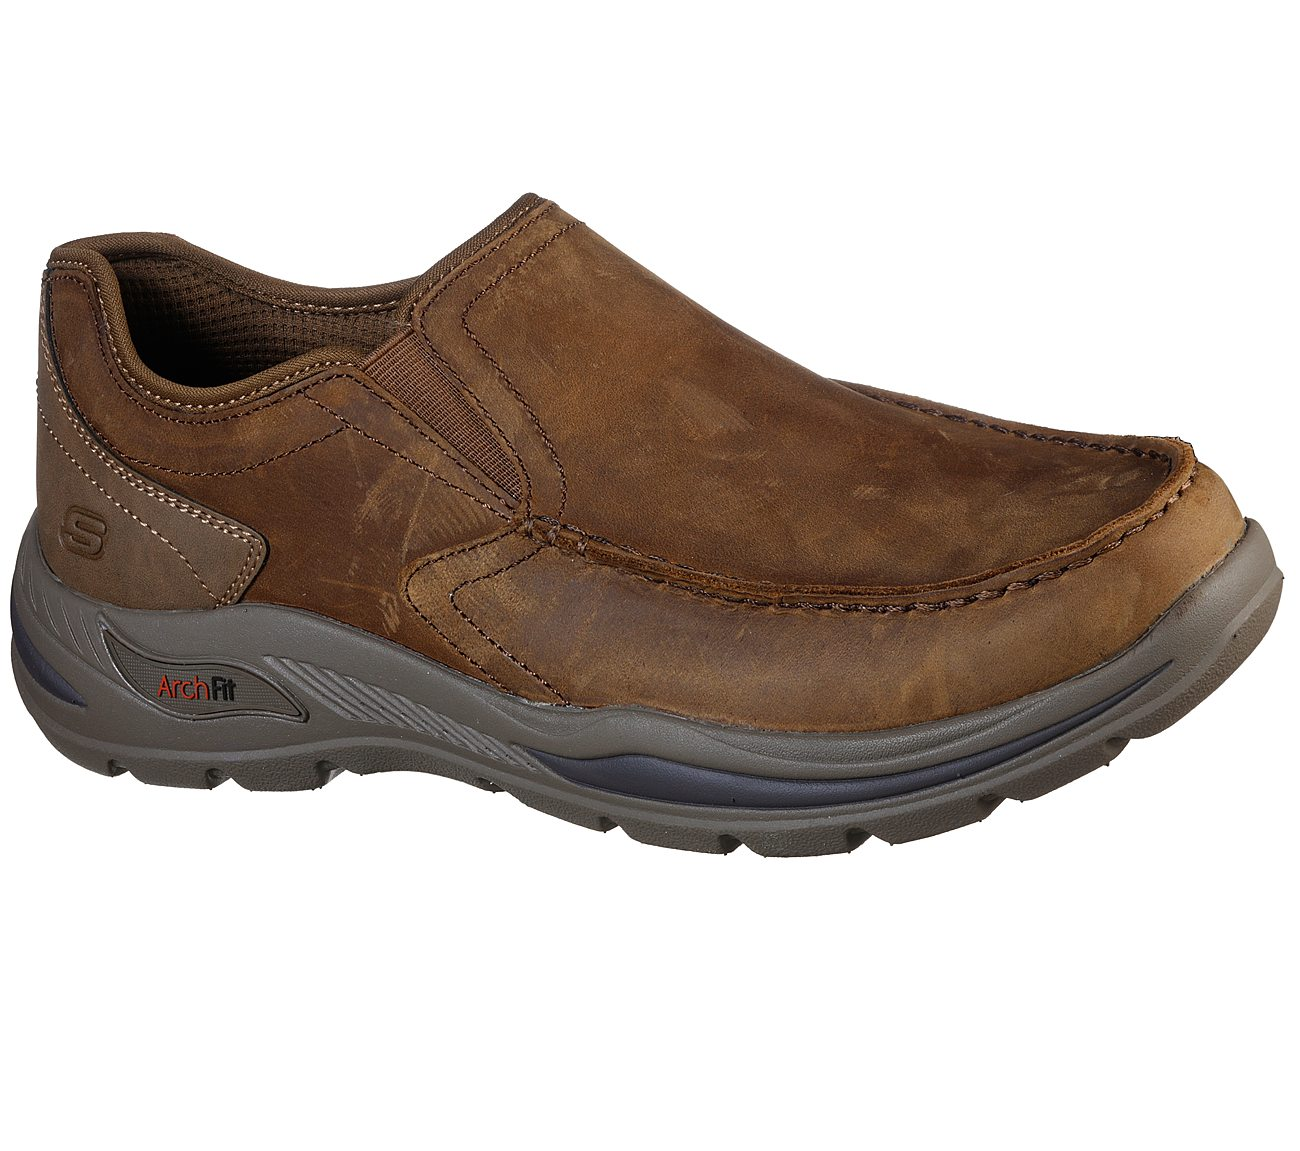 Hust EXTRA WIDE FIT Skechers Arch Fit Shoes